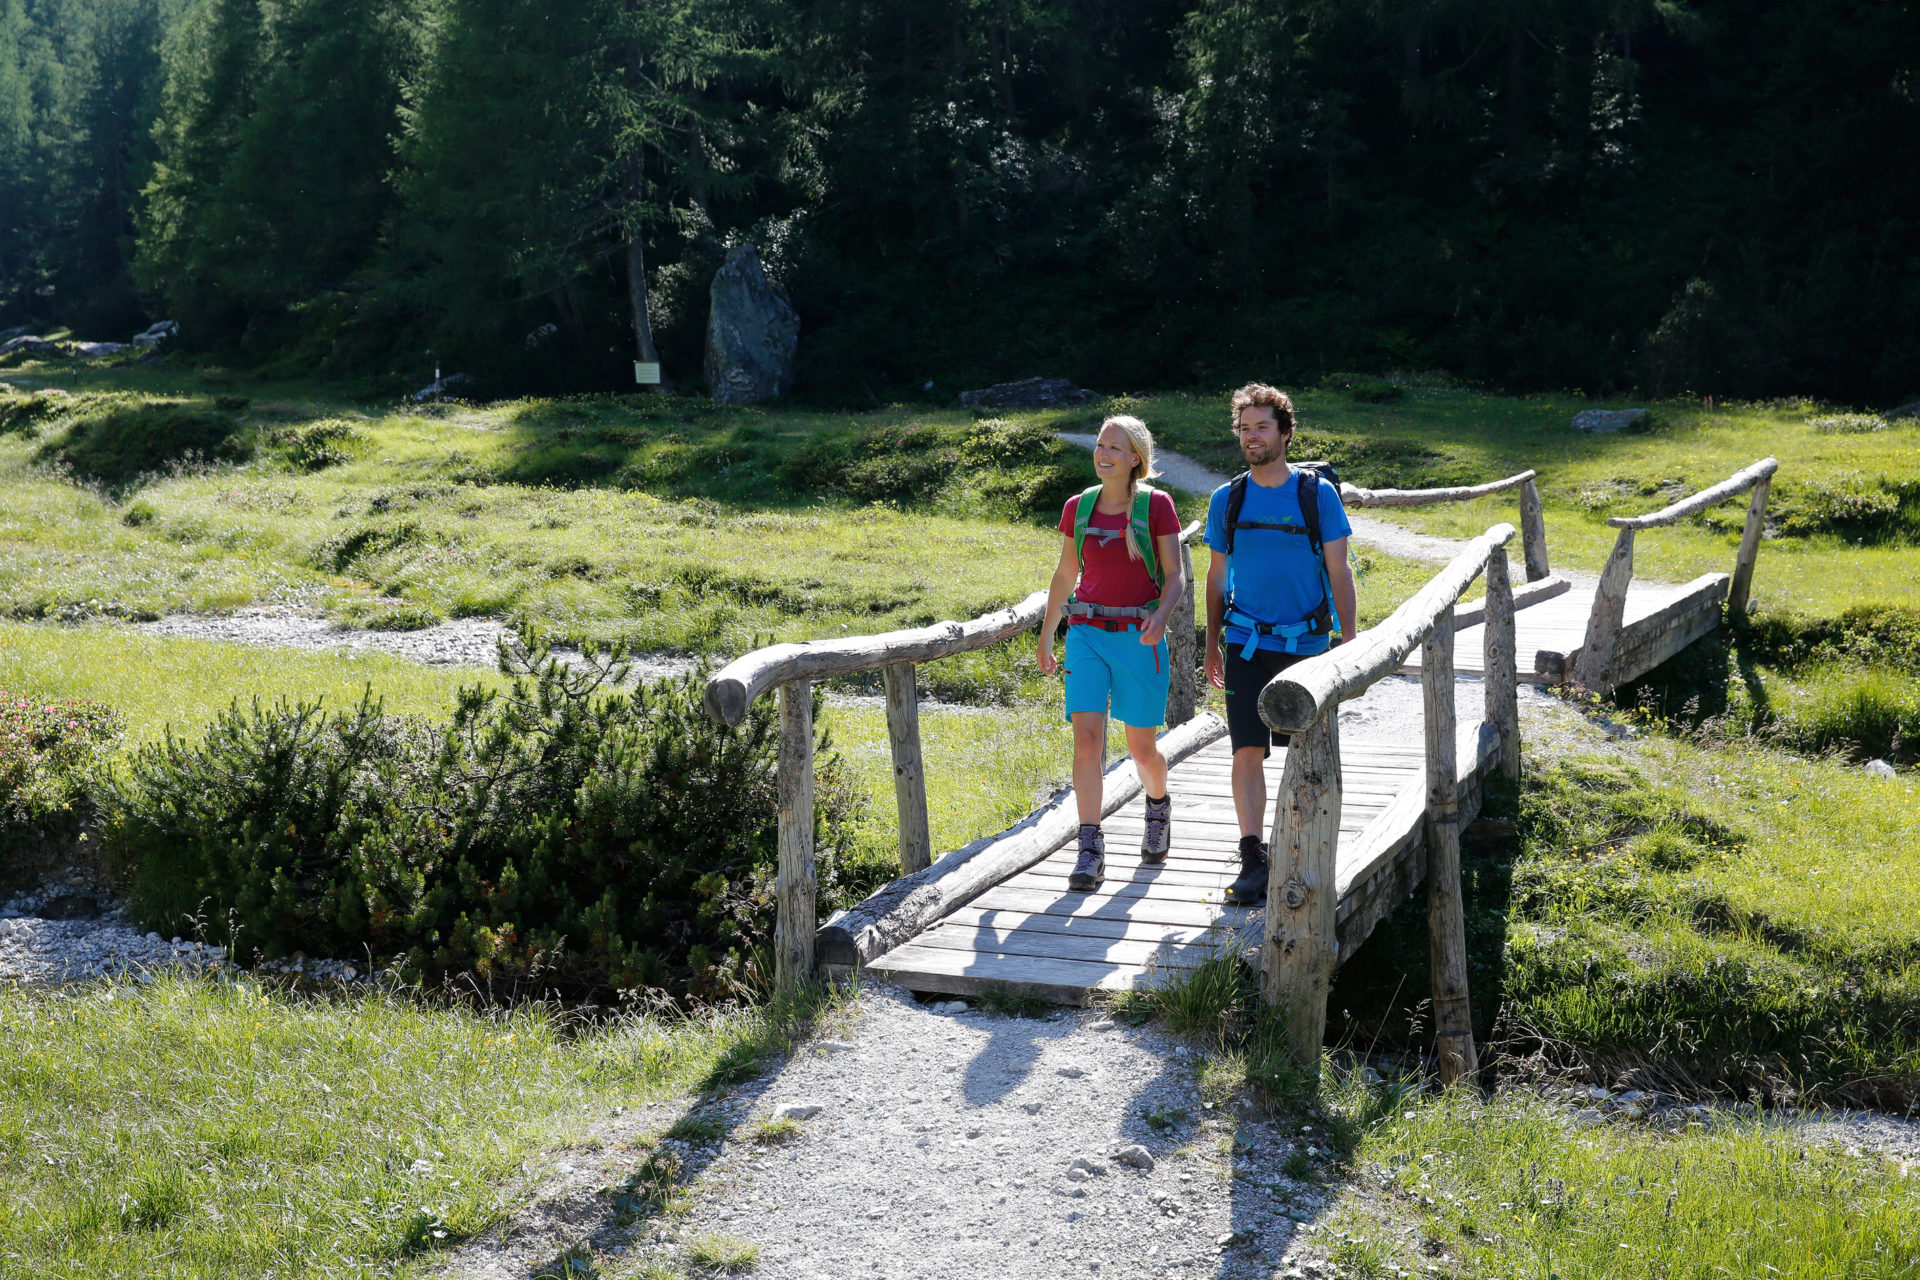 The Burgfellnerhof - Hiking-Fitness-Special